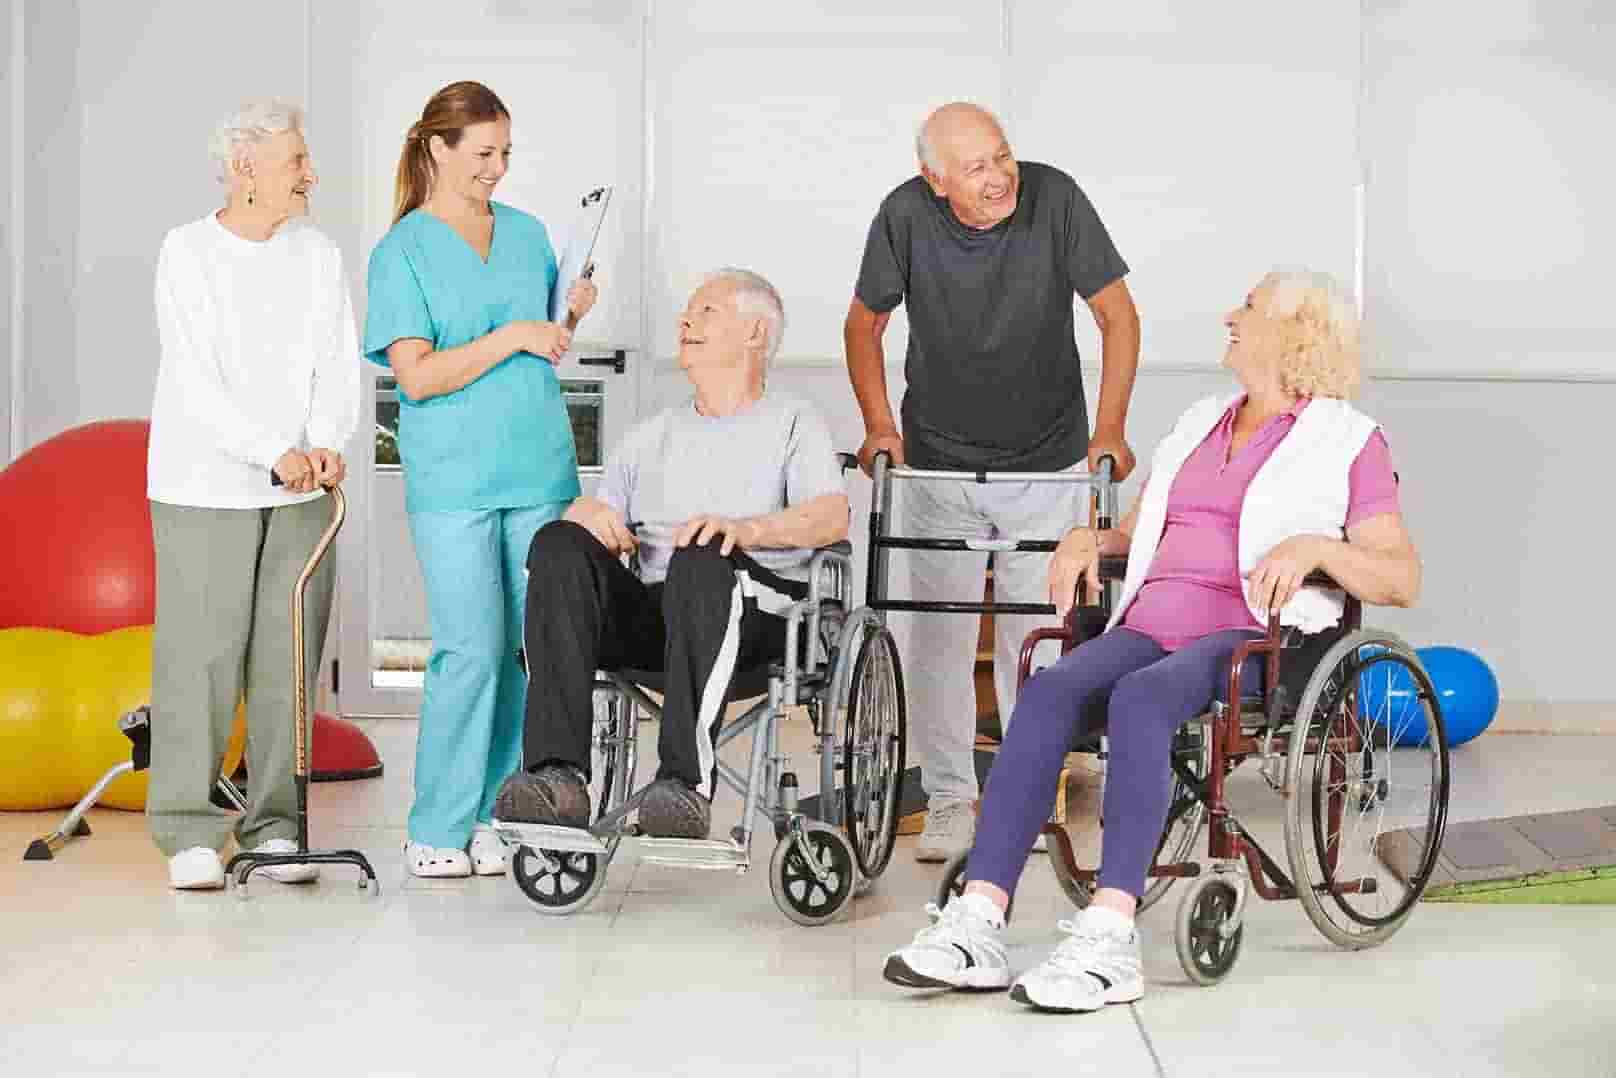 Synergy Integrated Services caters to the Aged Care sector of South Australia including caretaker services